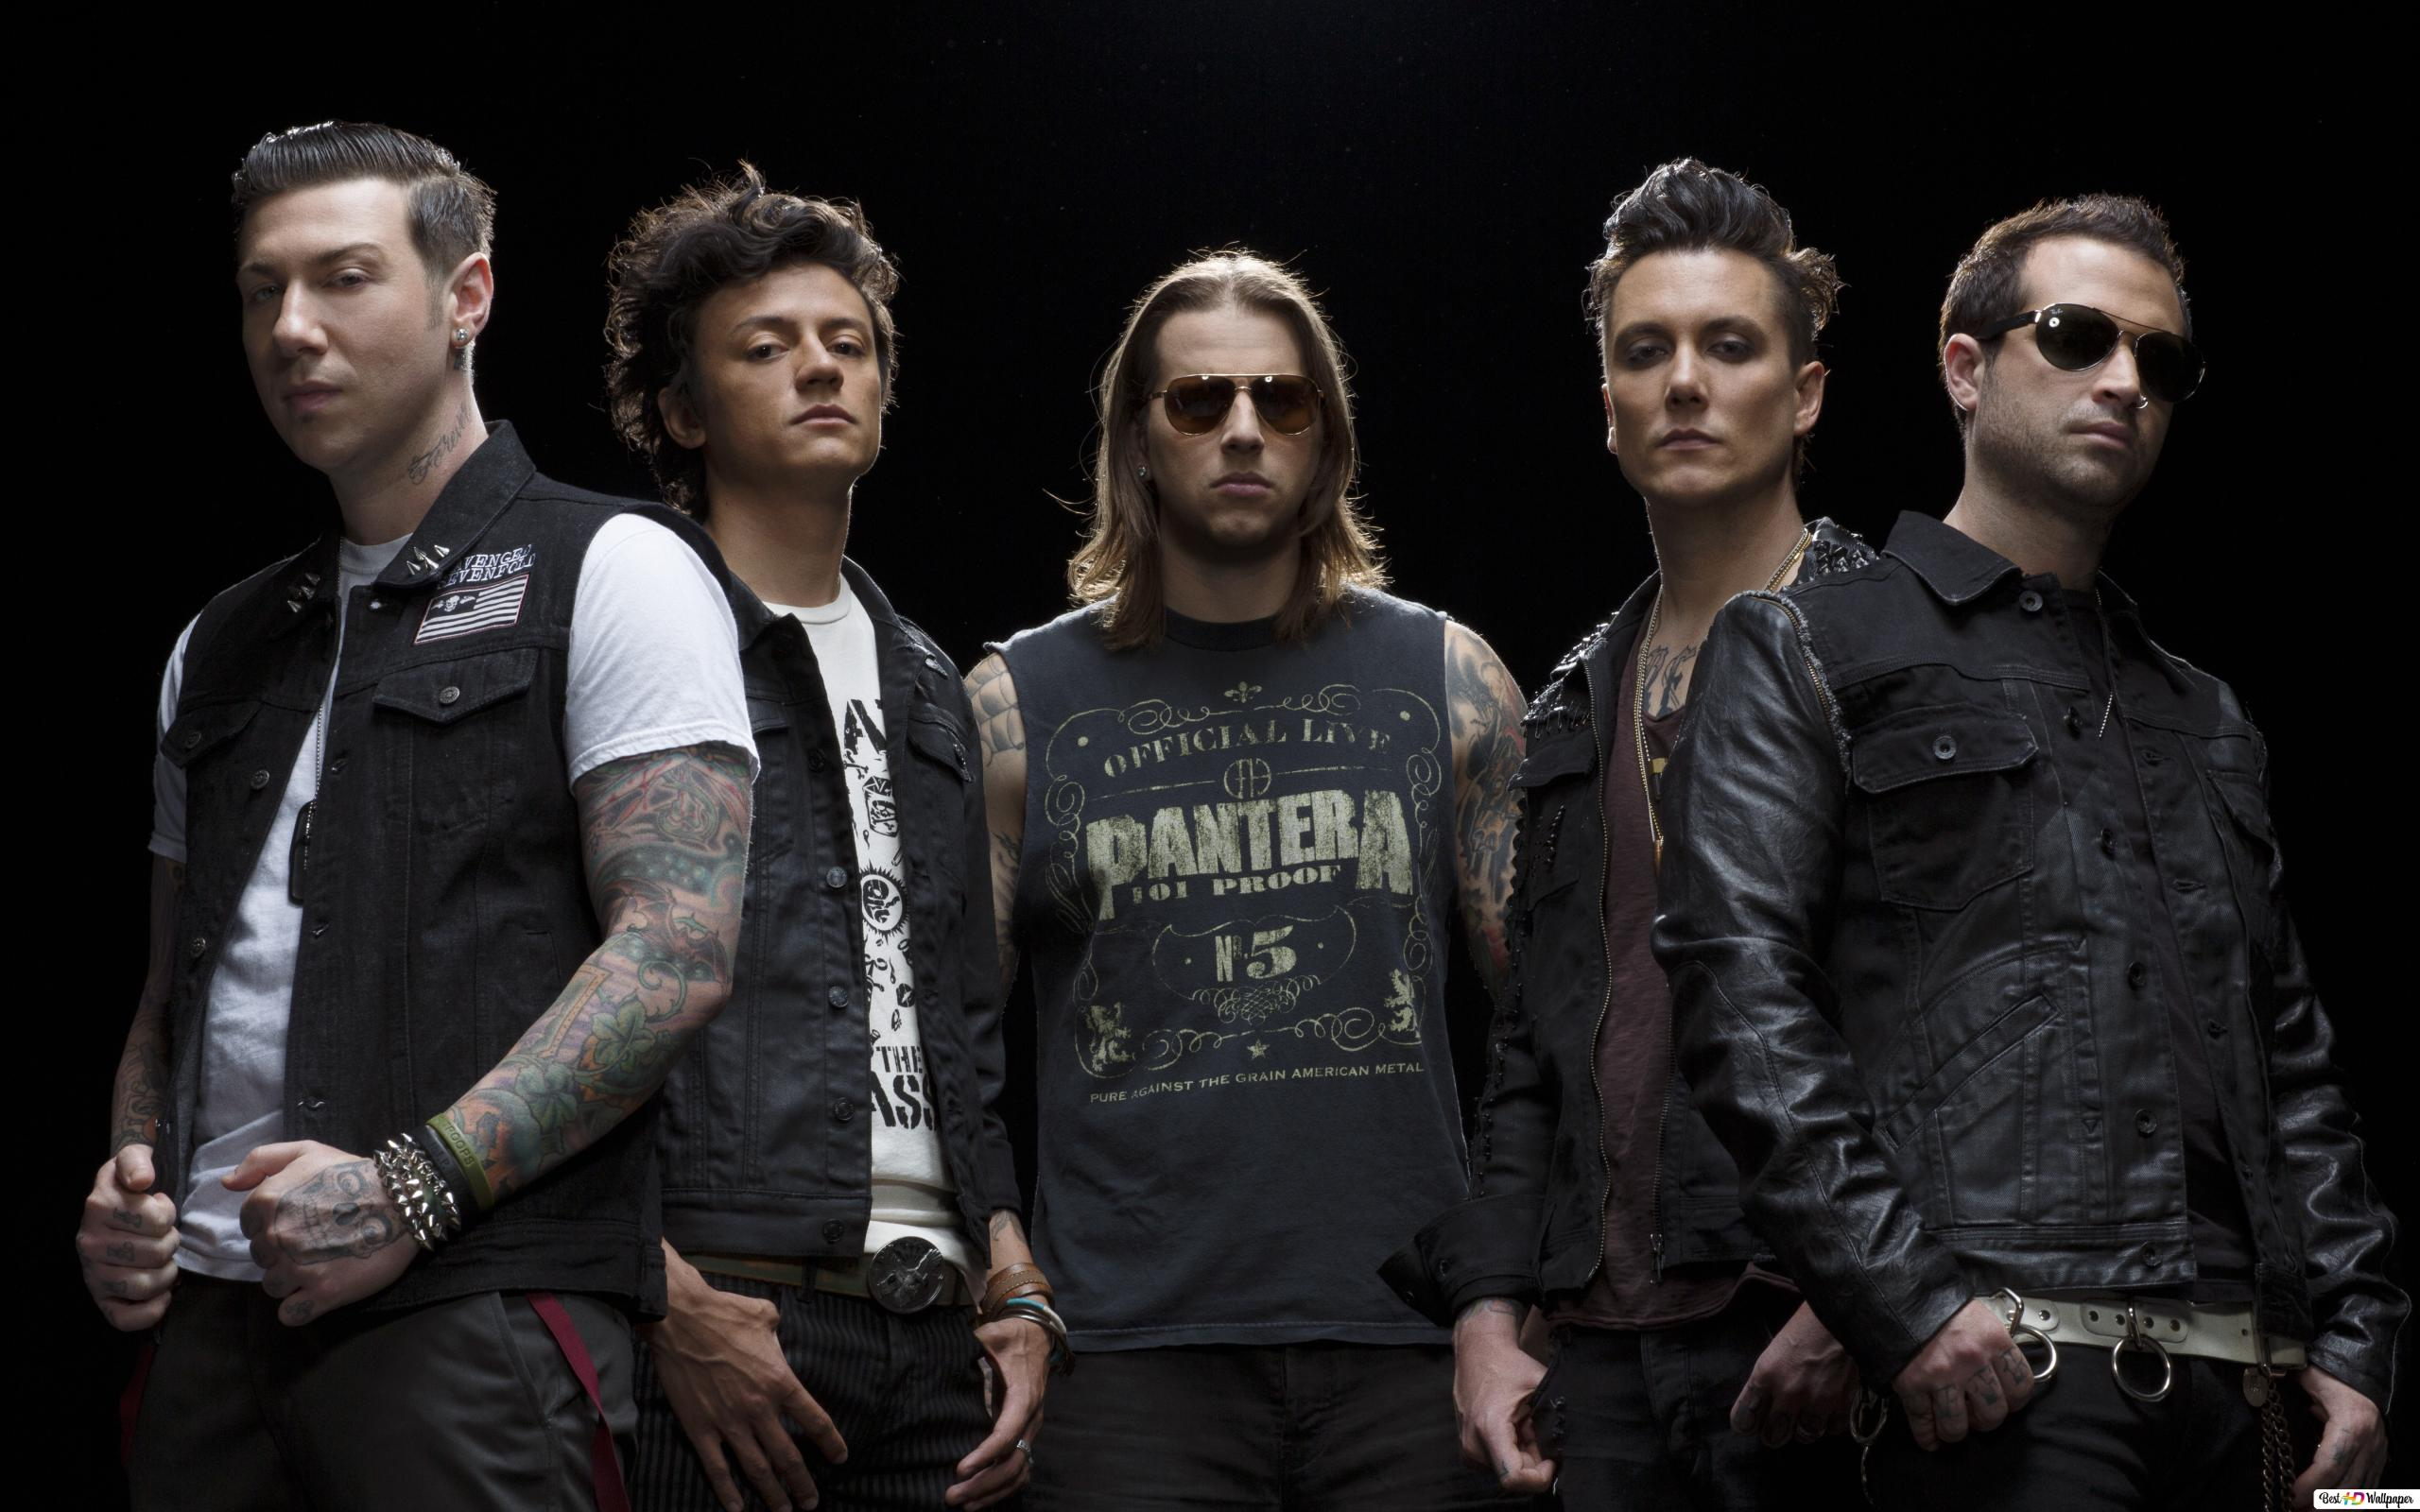 Avenged Sevenfold Band Hd Wallpaper Download